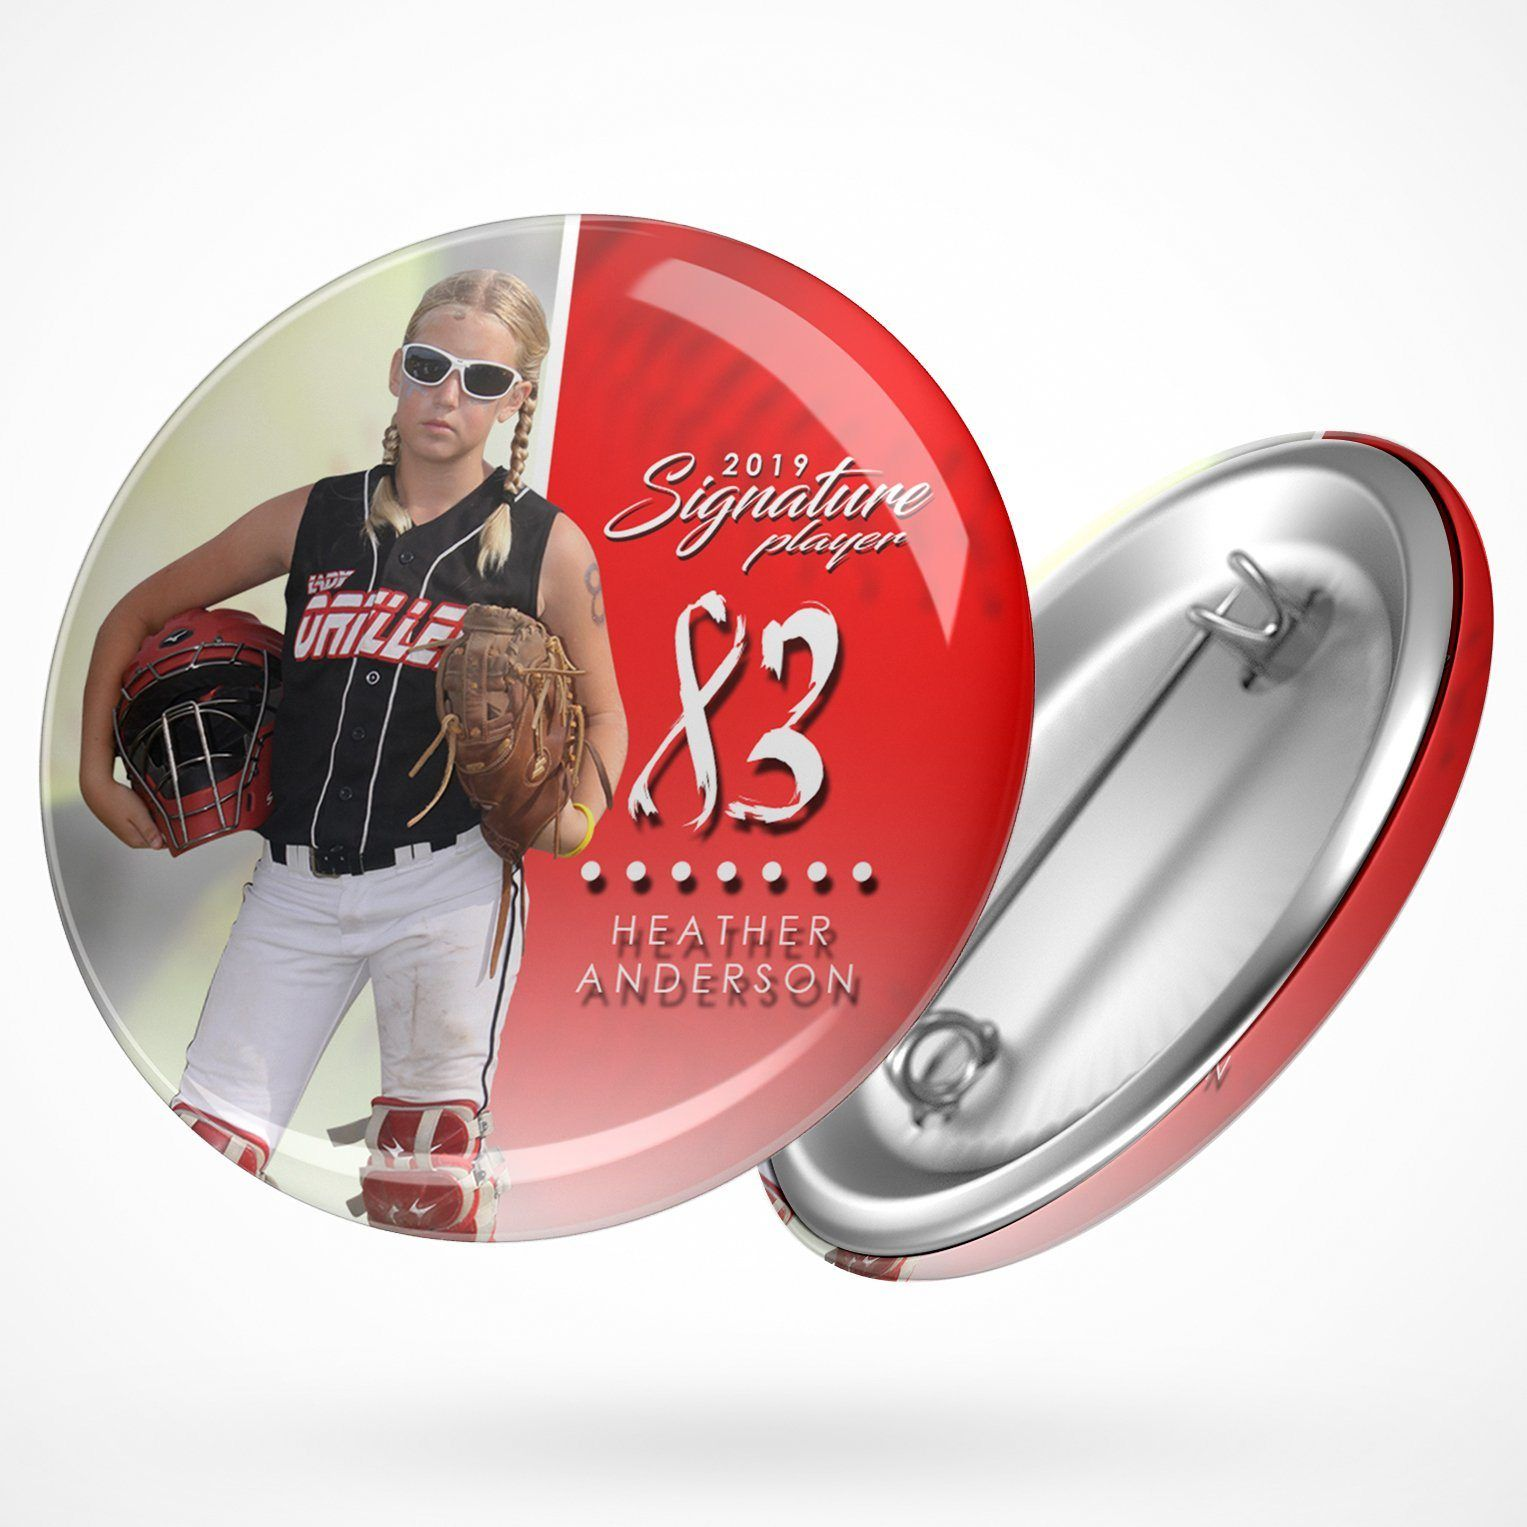 Signature Player - Softball - V1 - Extraction Button Template-Photoshop Template - Photo Solutions